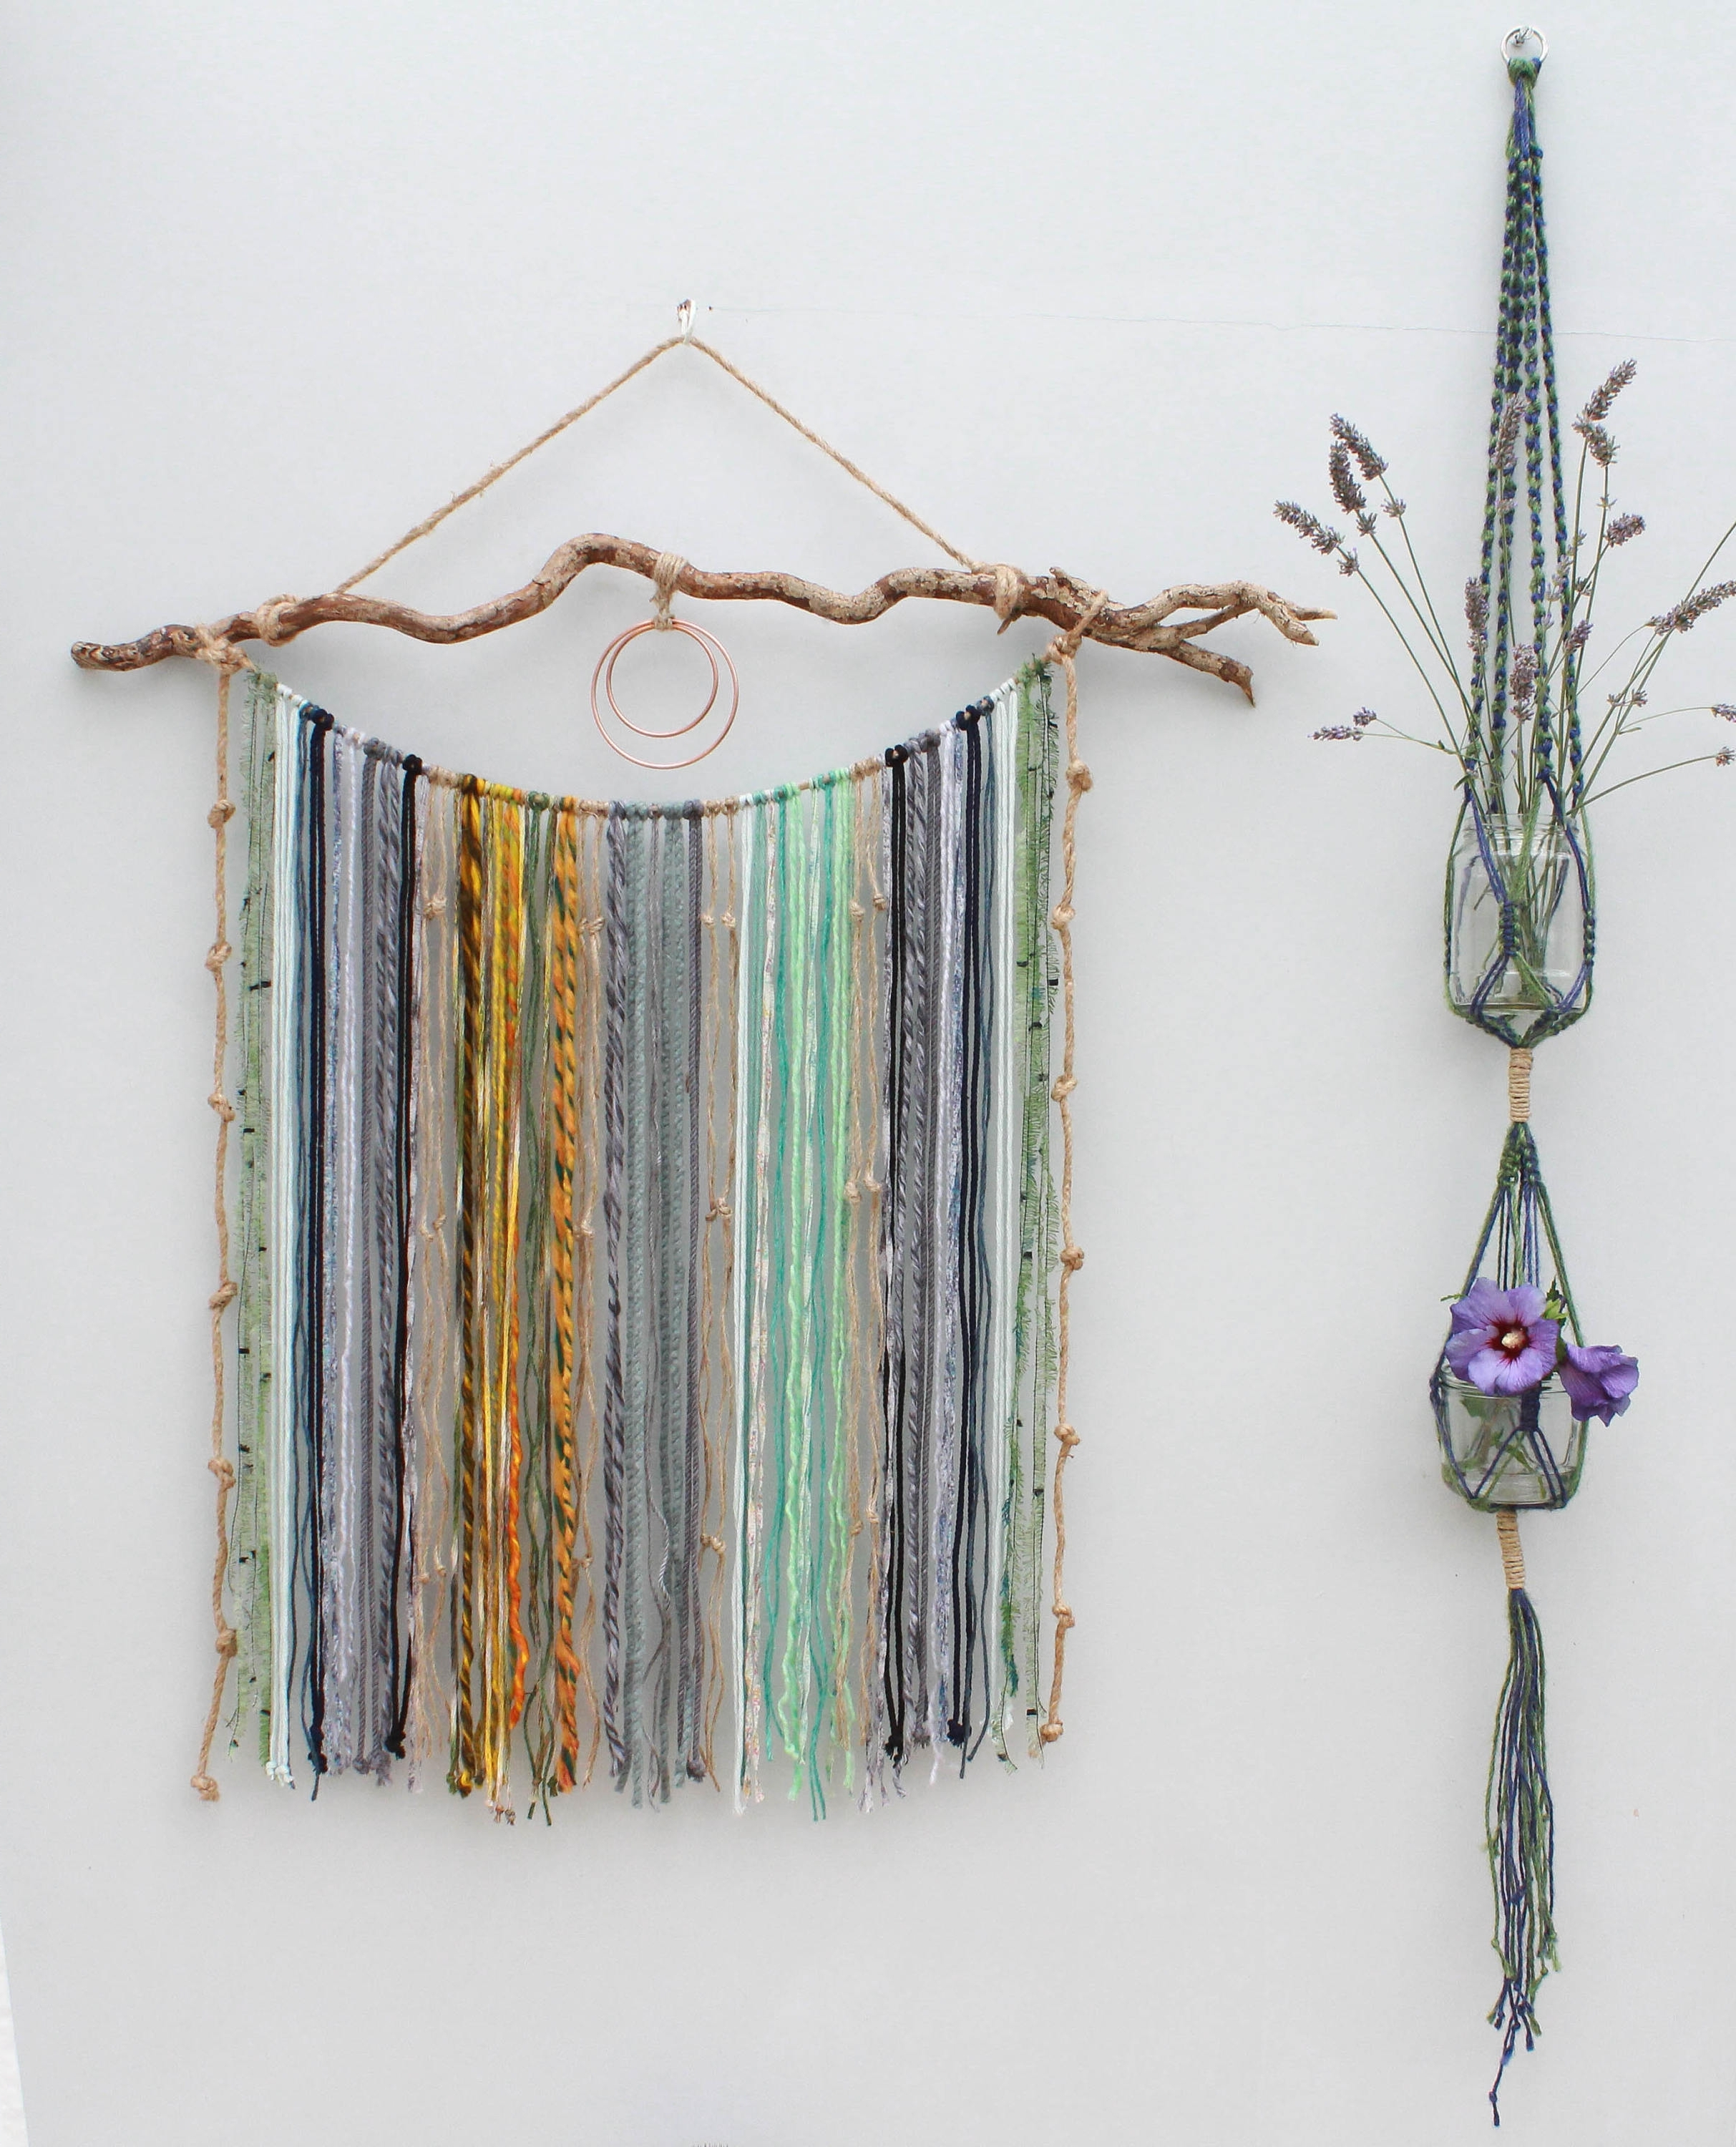 Yarn Wall Art Within 2017 Large Macrame Yarn Wall Hanging On Driftwood/ Mixed Media Hanging (Gallery 20 of 20)